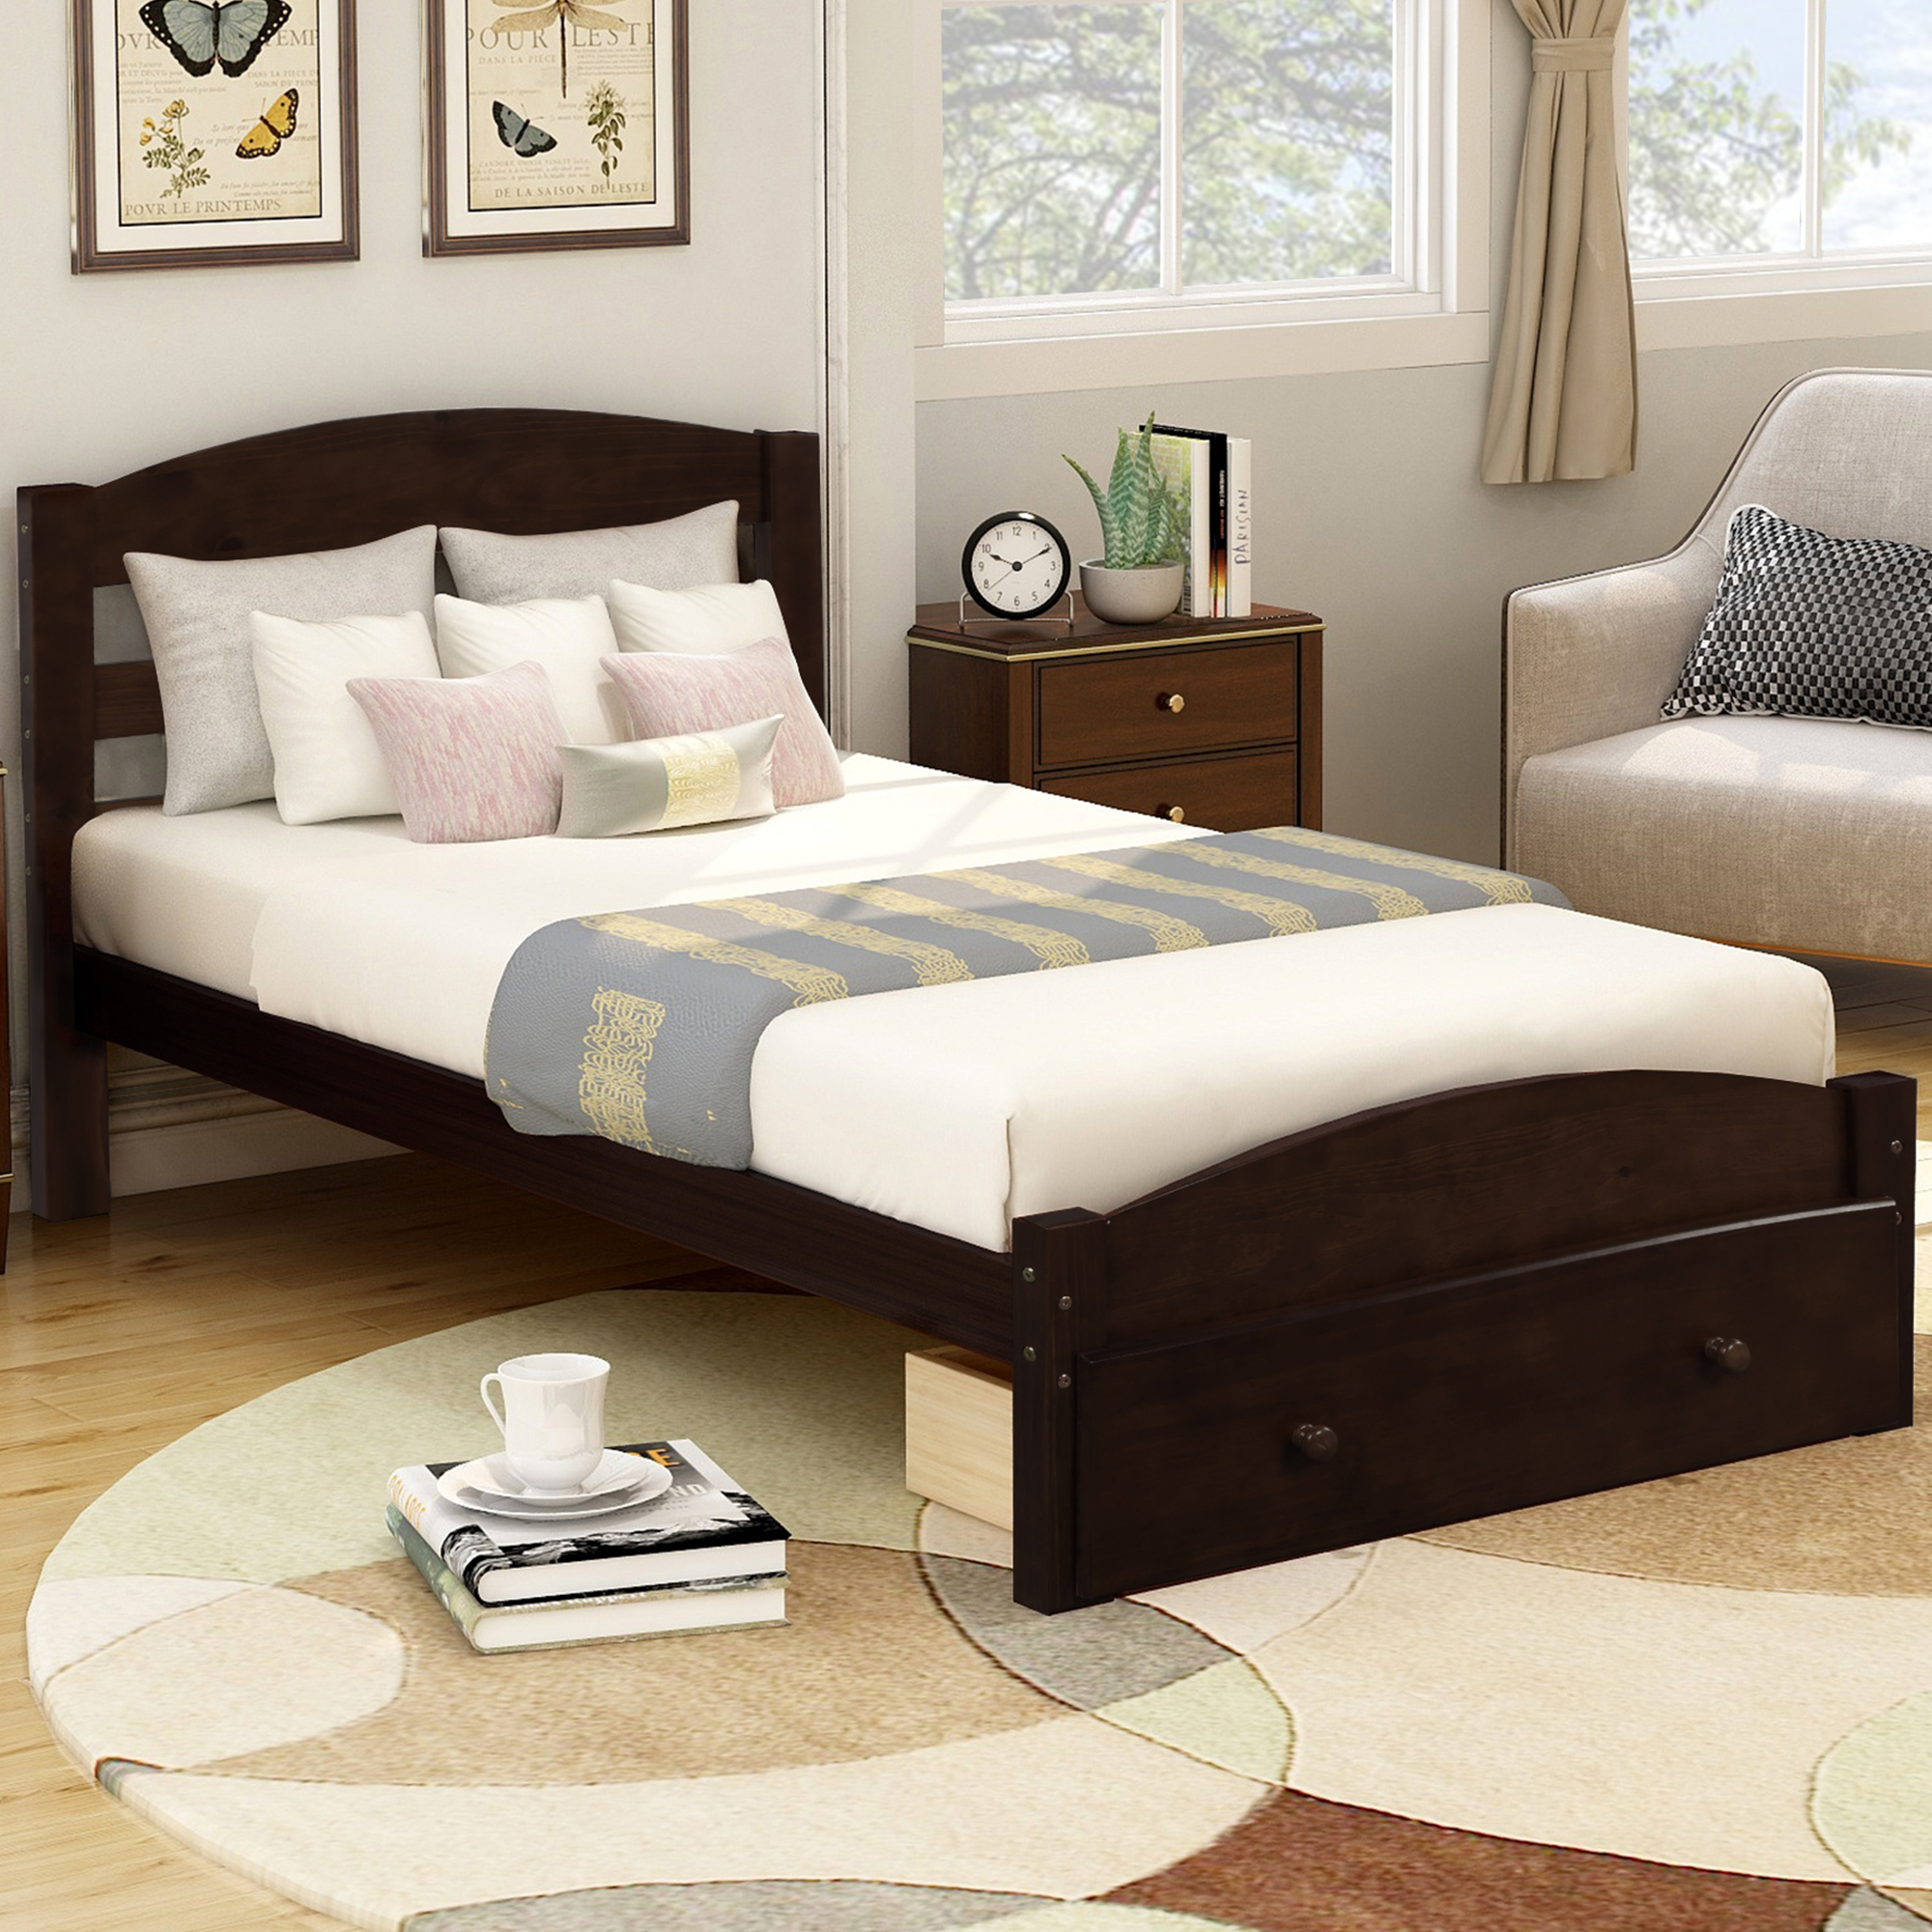 Image of: Urhomepro Twin Bed Platform Bed Frame With Storage Drawer Stable Pine Wood Bed Frame With Wood Slats Support Modern Bed Frame With Headboard Holds 275 Lb No Box Spring Needed Espresso Q6243